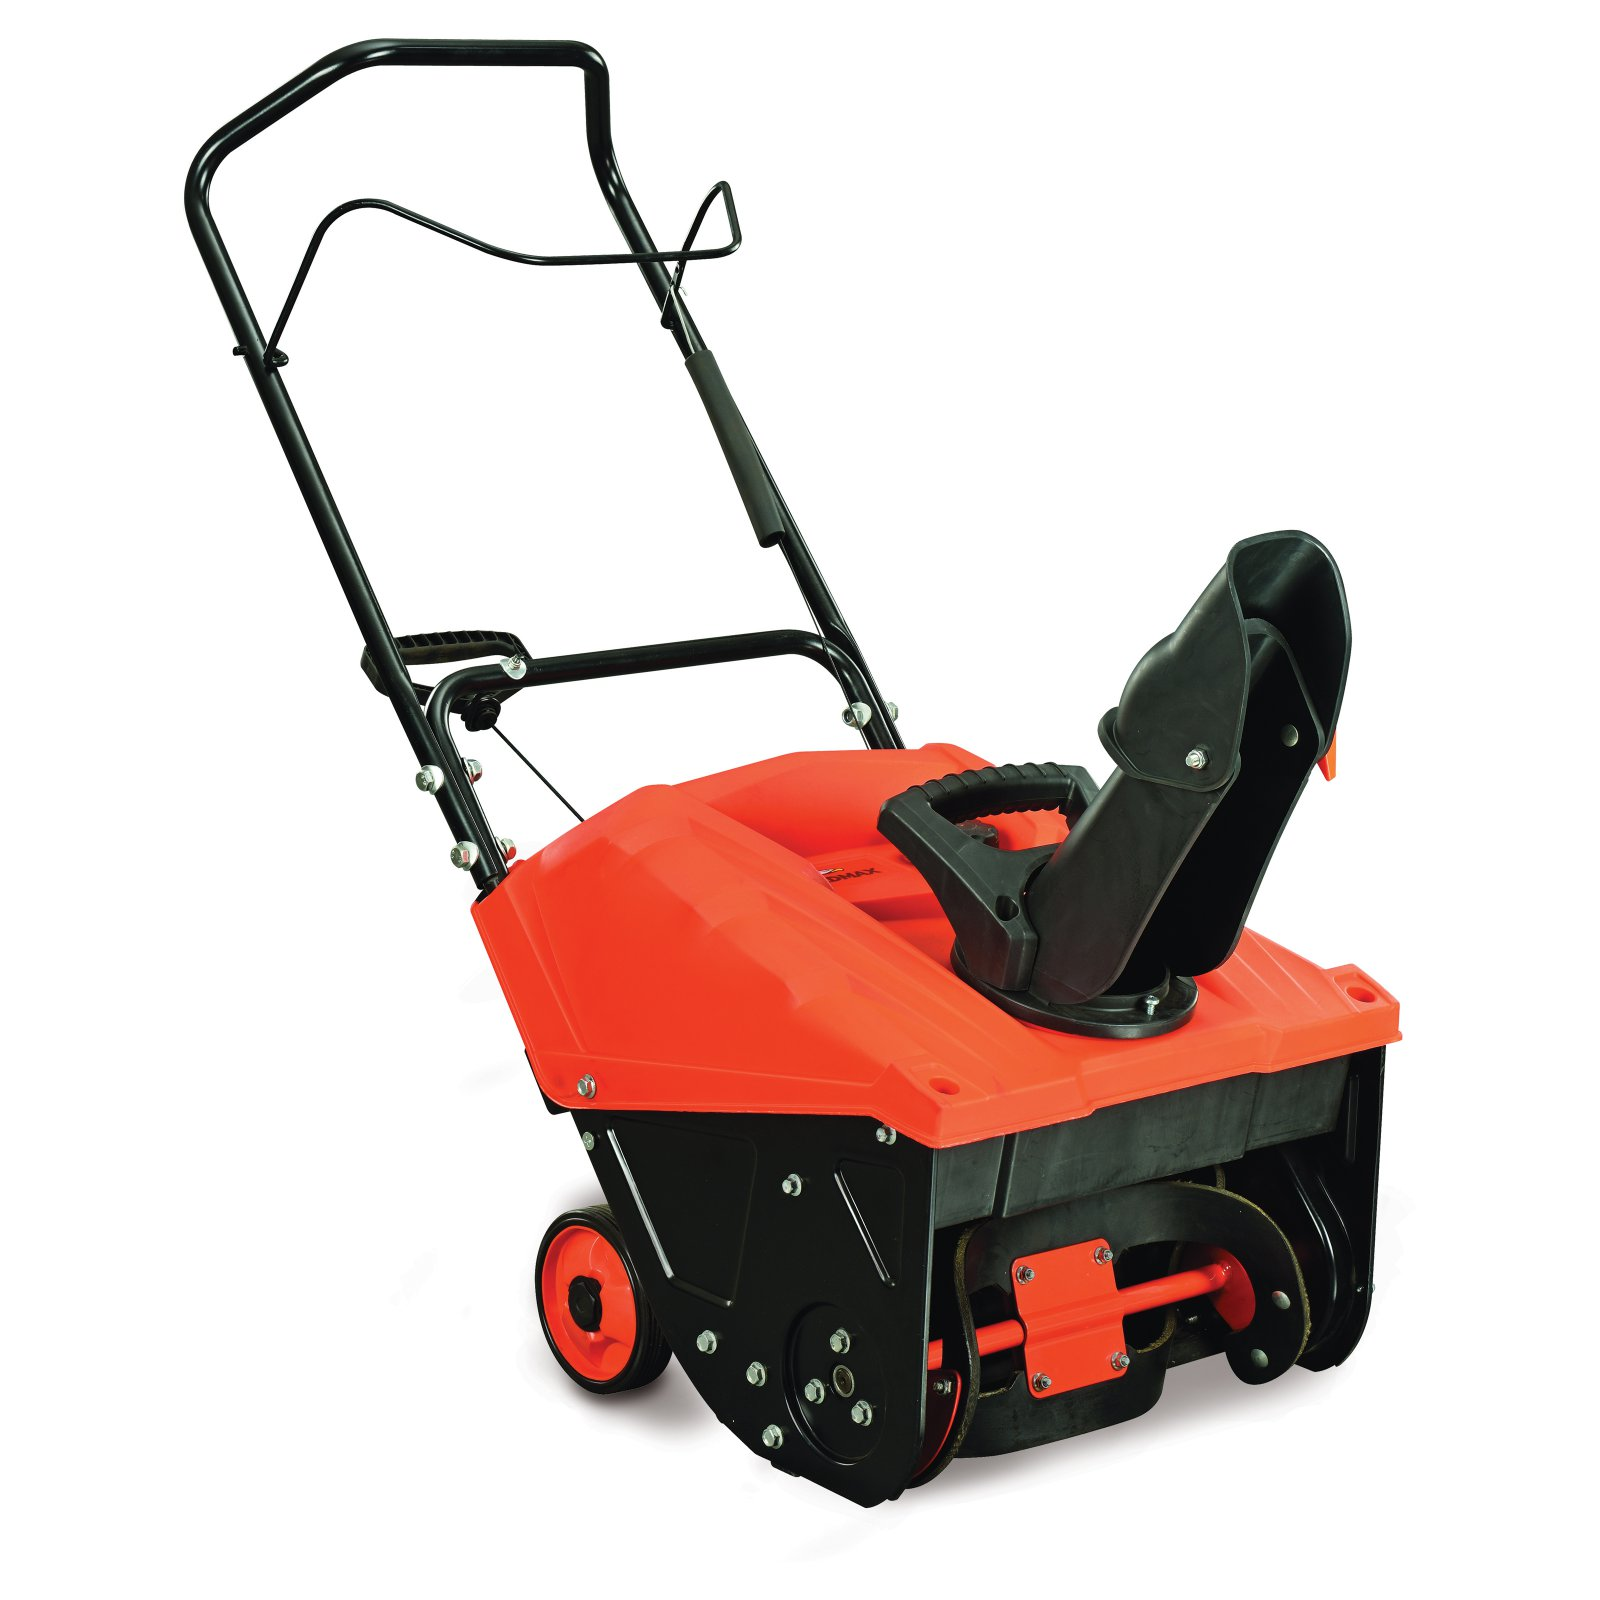 Yardmax Single-Stage Snow Thrower 18 in.